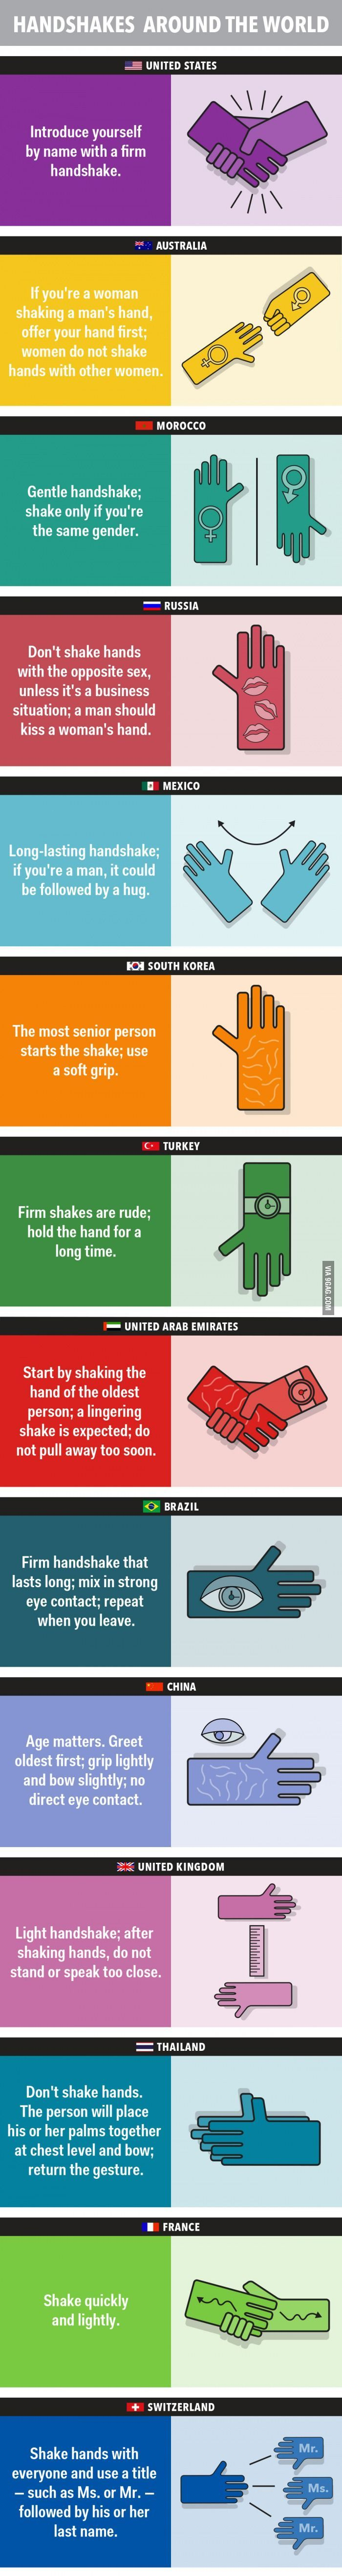 12 best business etiquette images on pinterest career handshakes from around the world fandeluxe Choice Image